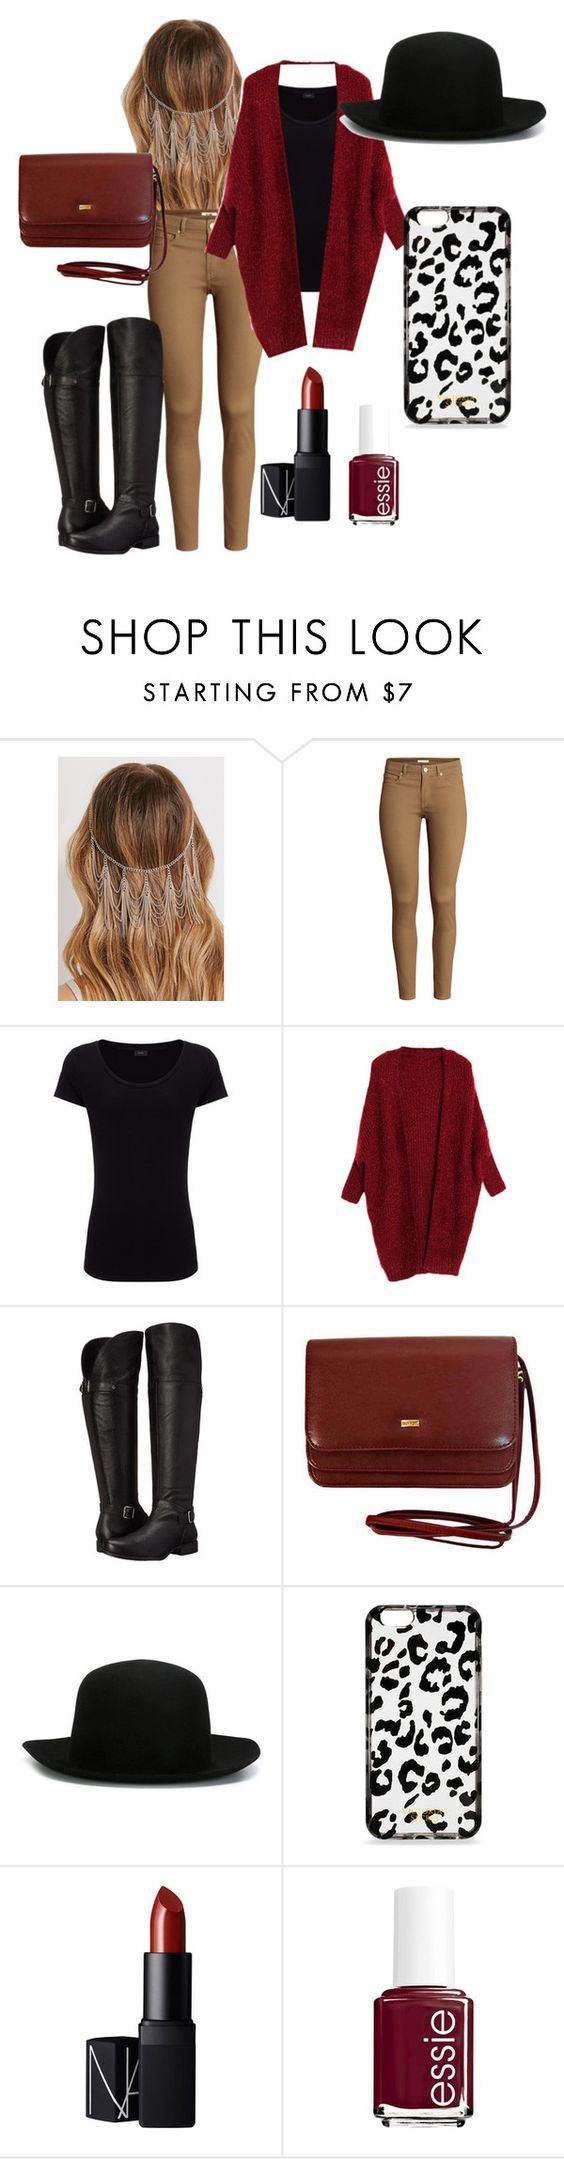 """""""Fall Love"""" by deshae27 ❤ liked on Polyvore featuring Forever 21, H&M, Joseph, Naturalizer, ISABEL BENENATO, Victoria's Secret, NARS Cosmetics and Essie"""